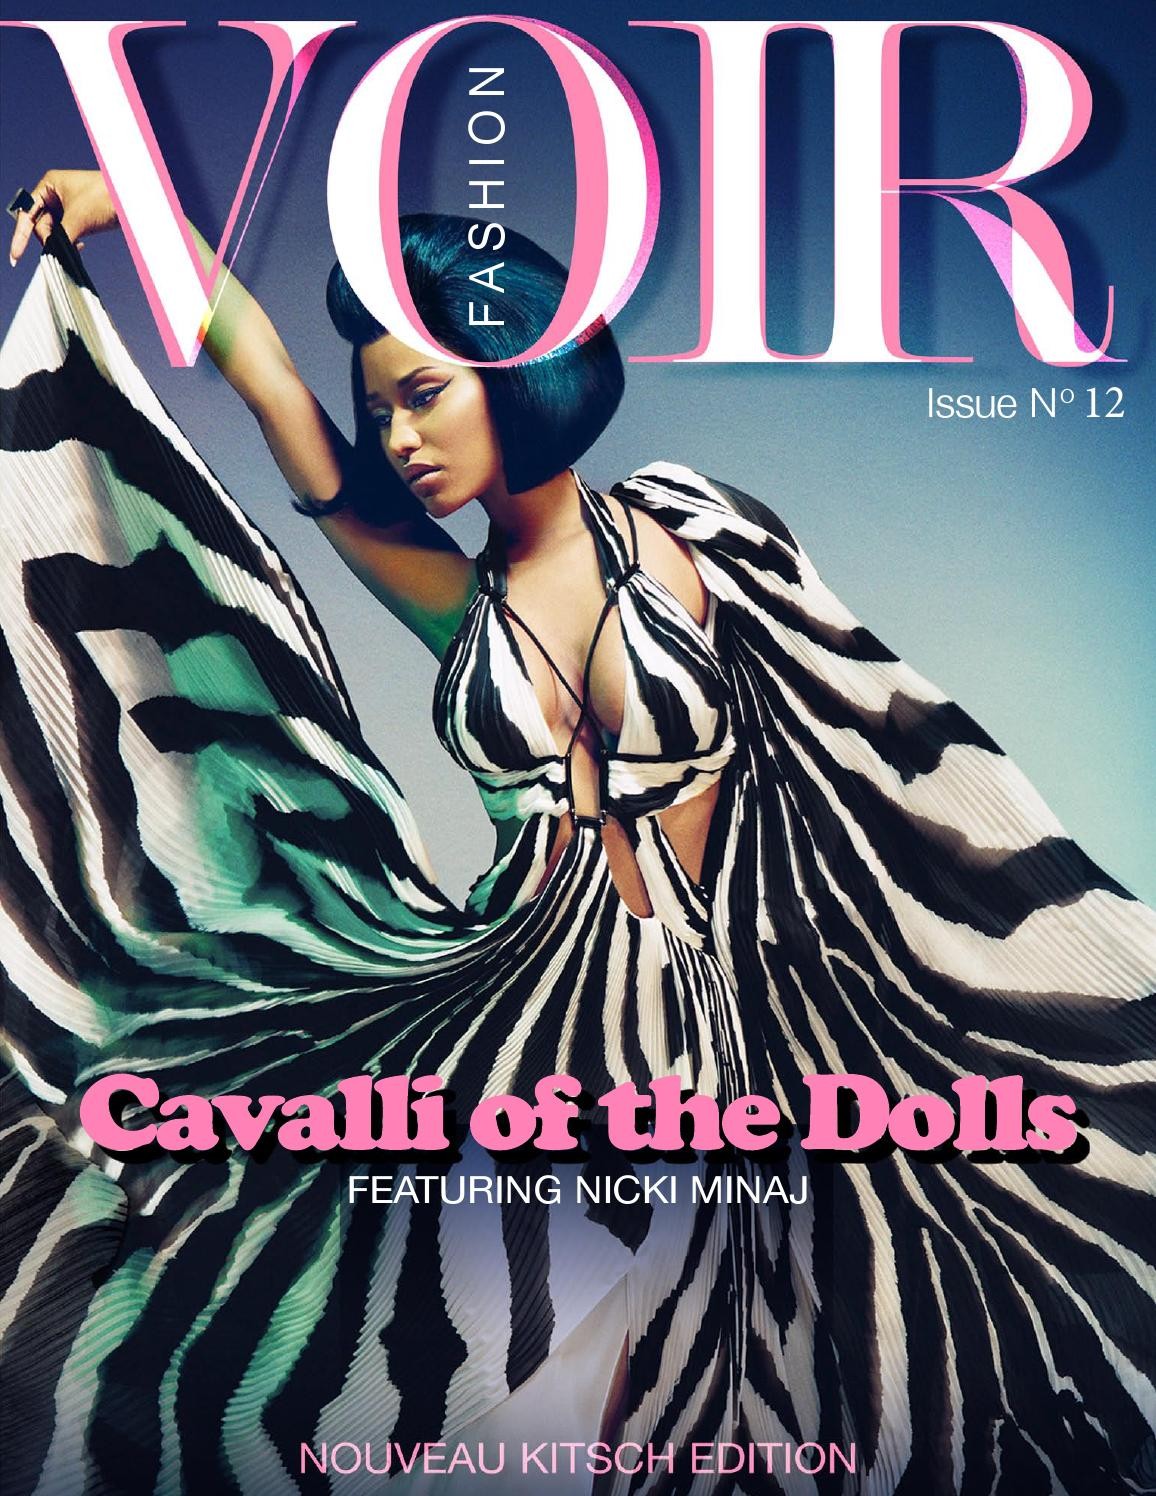 Voir Fashion Issue 12 Cavalli Of The Dolls By Voir Fashion Magazine Issuu